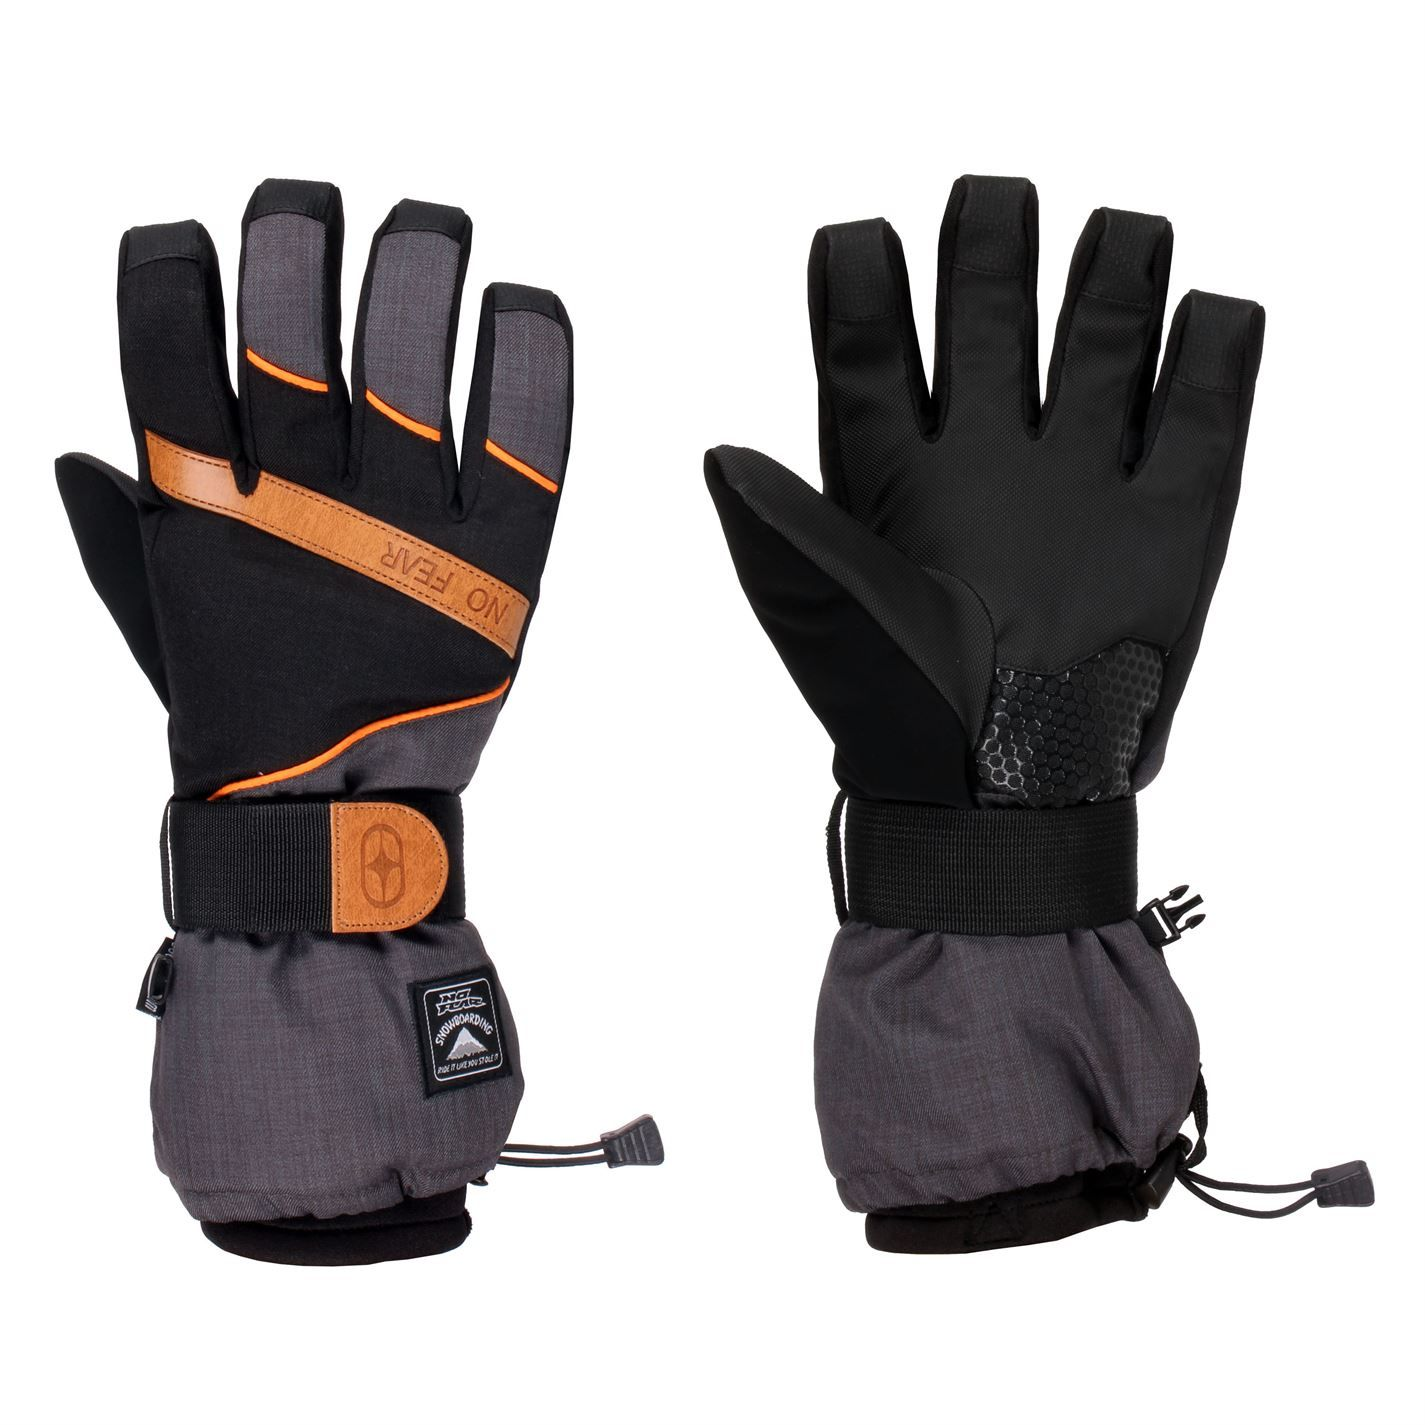 Mens gloves sports direct - No Fear Boost Ski Glvsn61 Sportsdirect Com